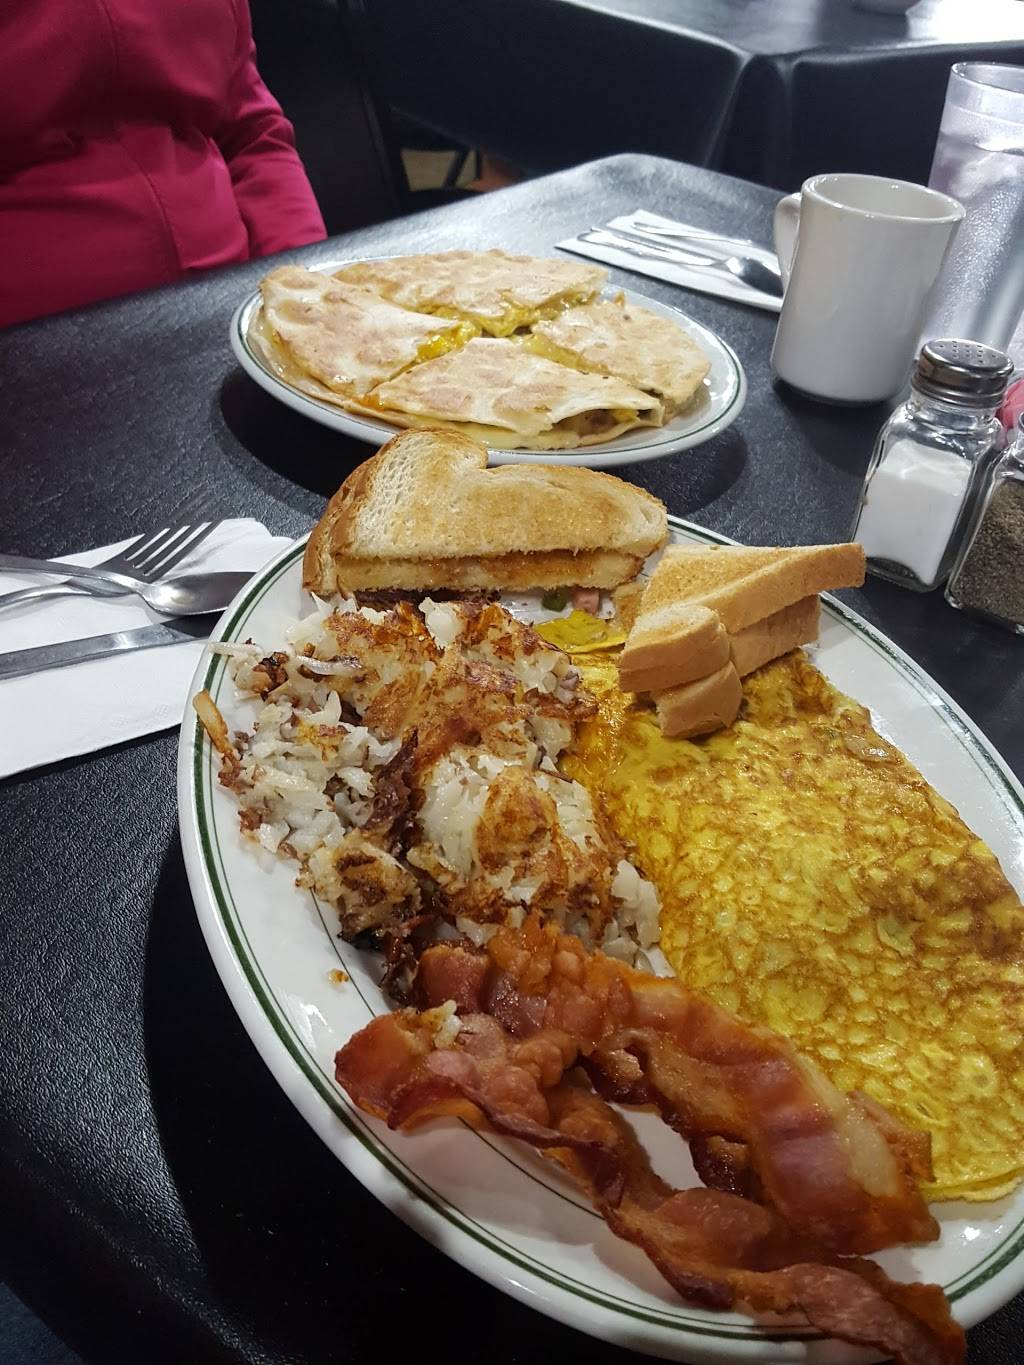 Shirleys Family Diner   restaurant   438 Main St, Forest City, PA 18421, USA   5707858800 OR +1 570-785-8800